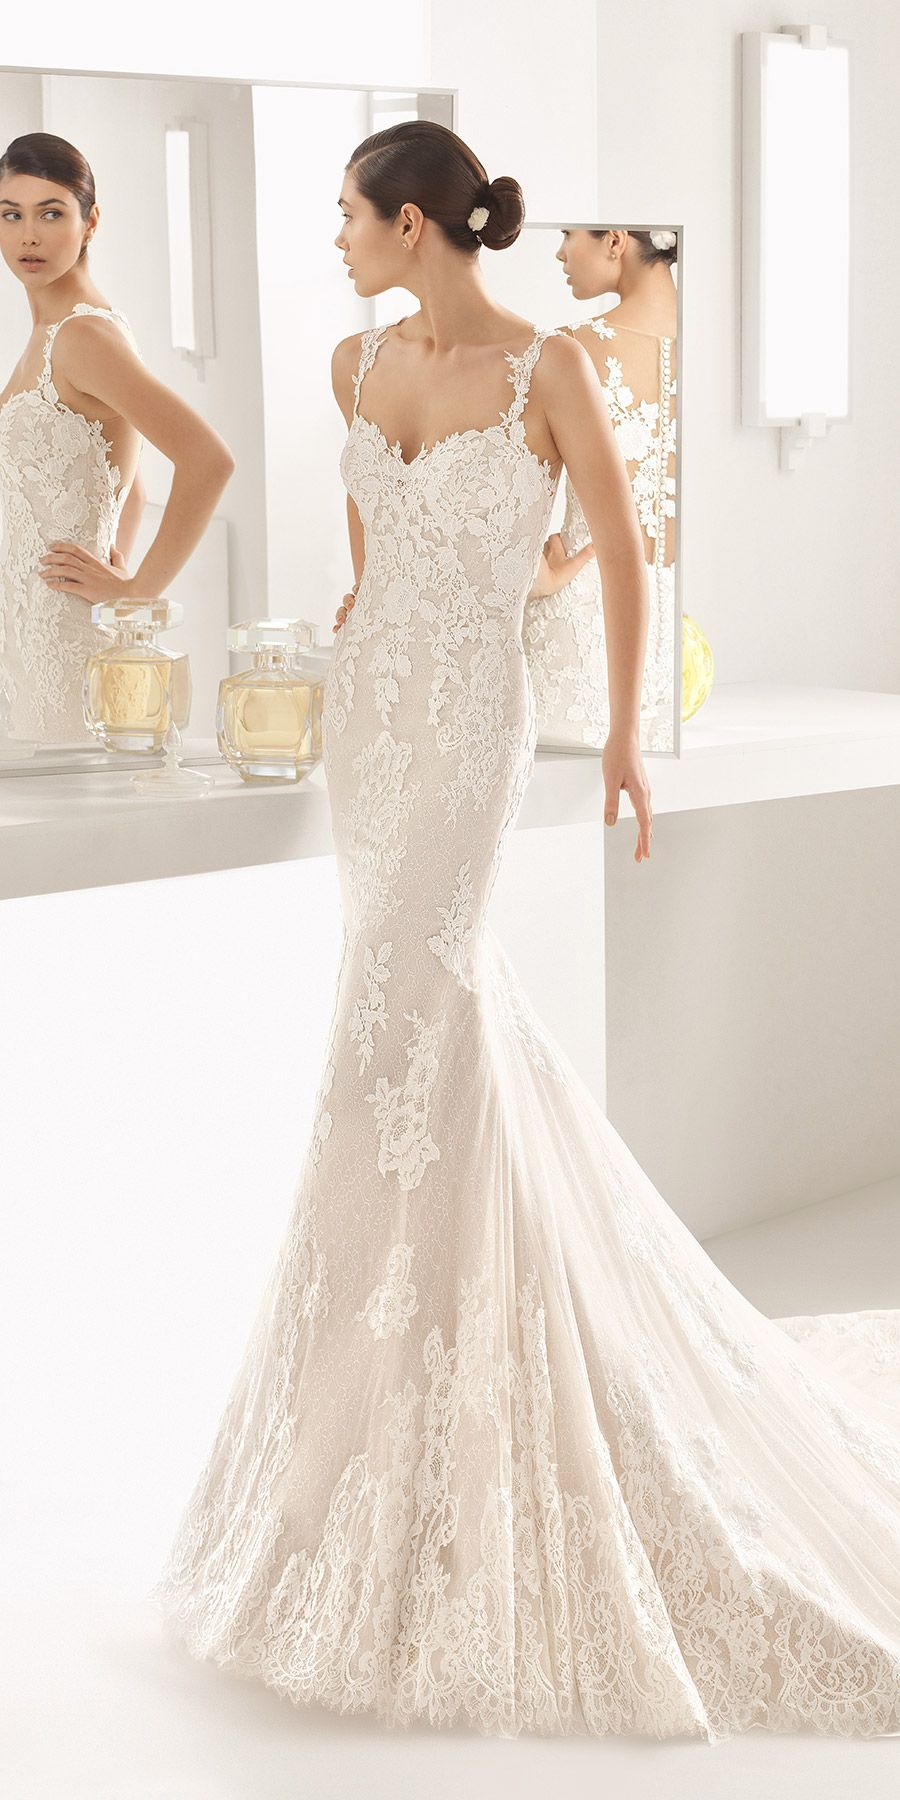 Oboe by rosaclara an elegant mermaid gown in stunning guipure lace